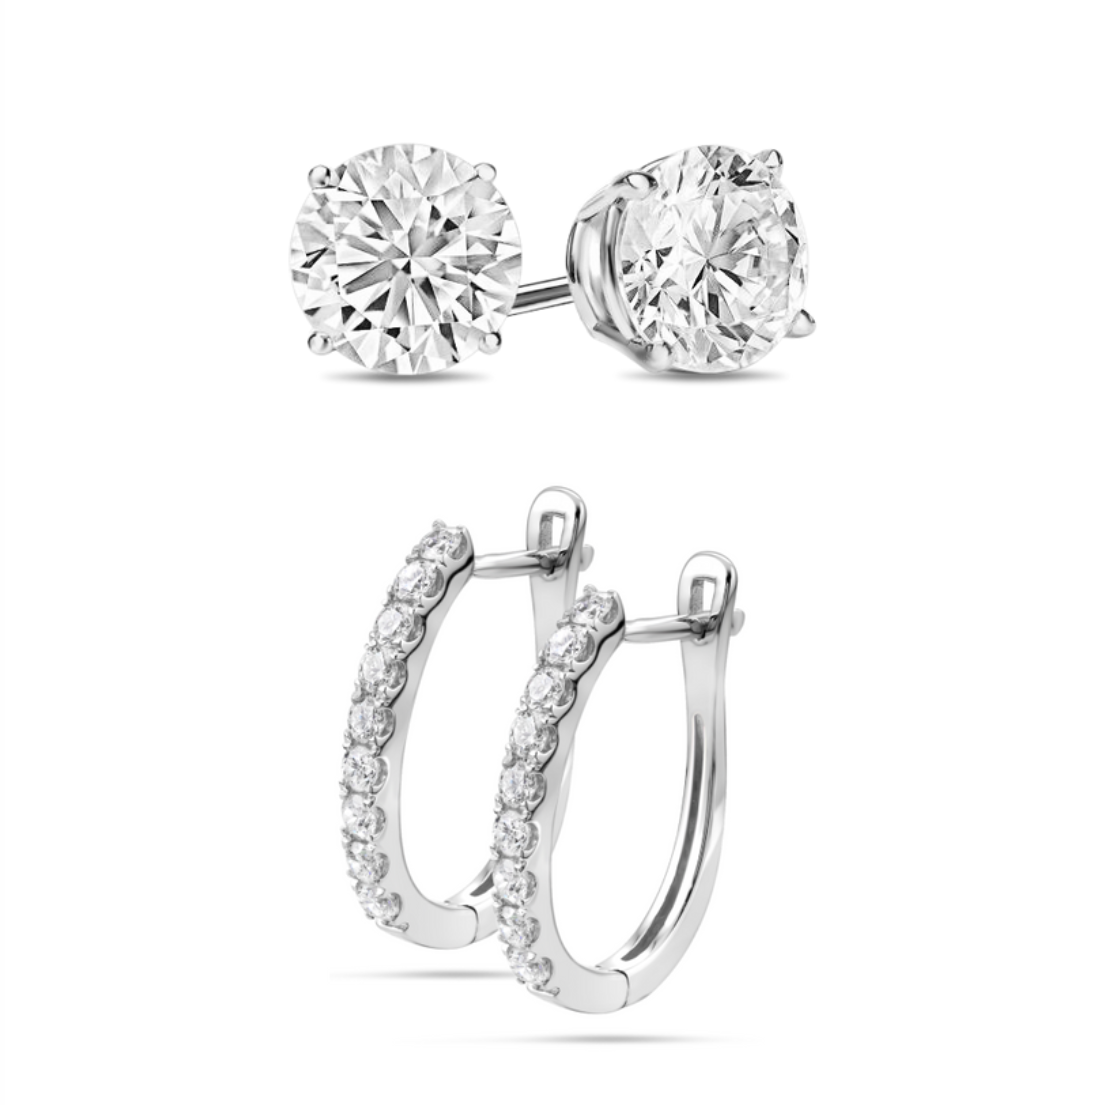 [PROMO SET] Sarlotte Giovanni Earrings Diamond Set